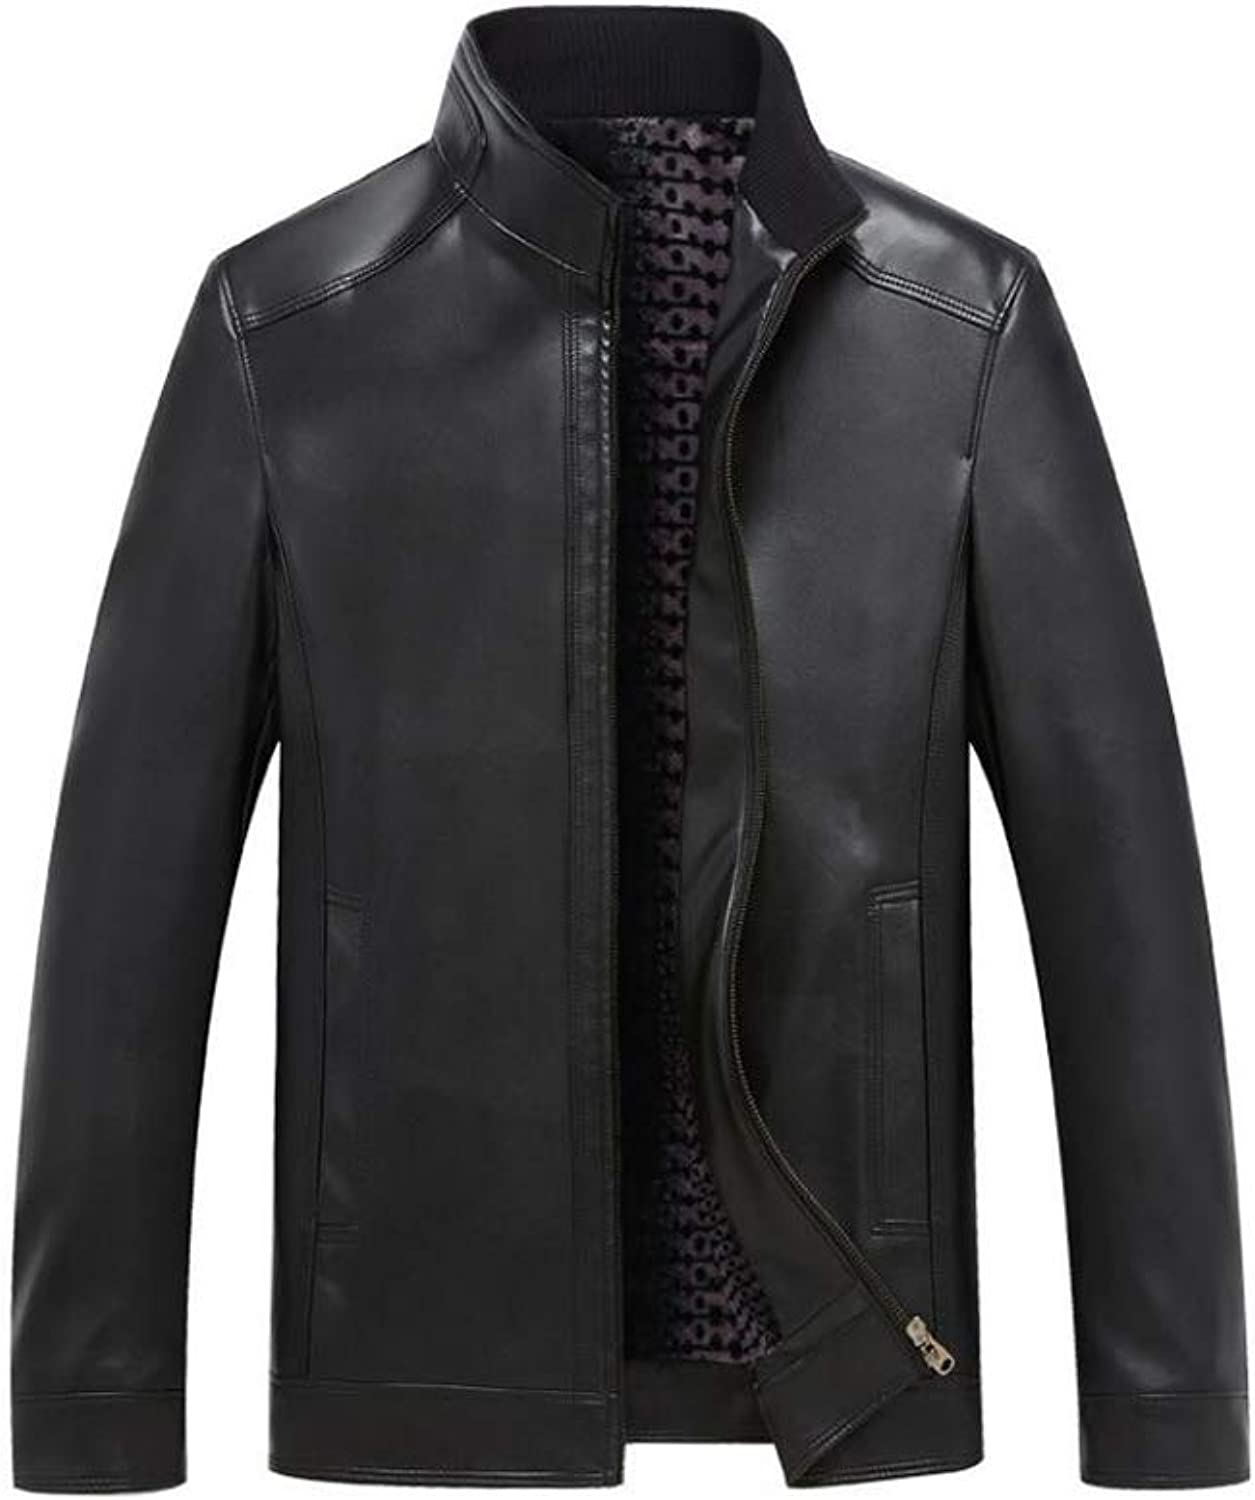 buy popular eee2f 78207 Autumn Autumn Autumn Winter New Men s Middle-Aged Jackets, Stand Collar PU  Leather Jacket Coat,Slim Fit Long Sleeve Zipper Outwear Coat Top (color  Black ...